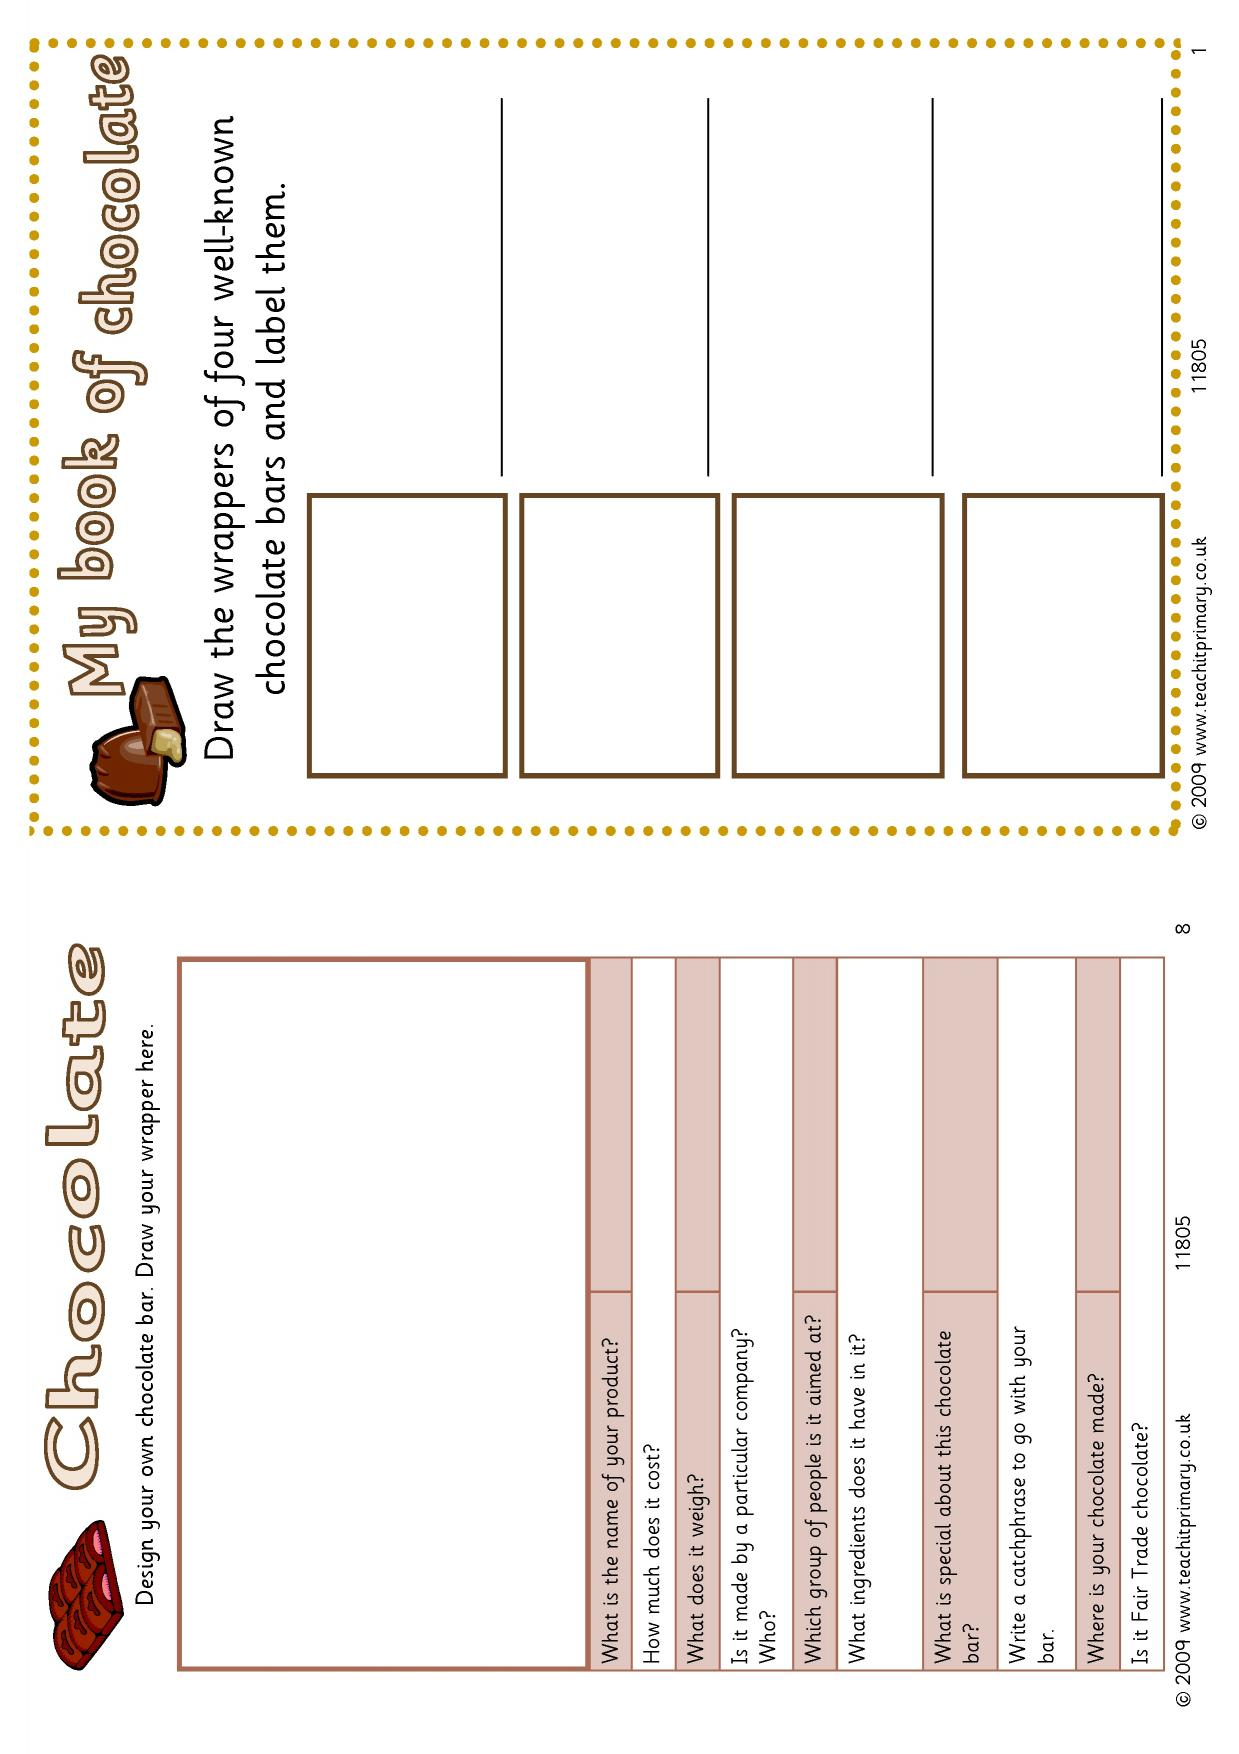 Awesome 1 Week Schedule Template Small 1.5 Binder Spine Template Square 10 Best Resume Writers 10 Hour Schedule Templates Old 100 Powerful Resume Words Yellow1099 Int Template Writing Composition Resources For FS, KS1 And KS2   Teachit ..